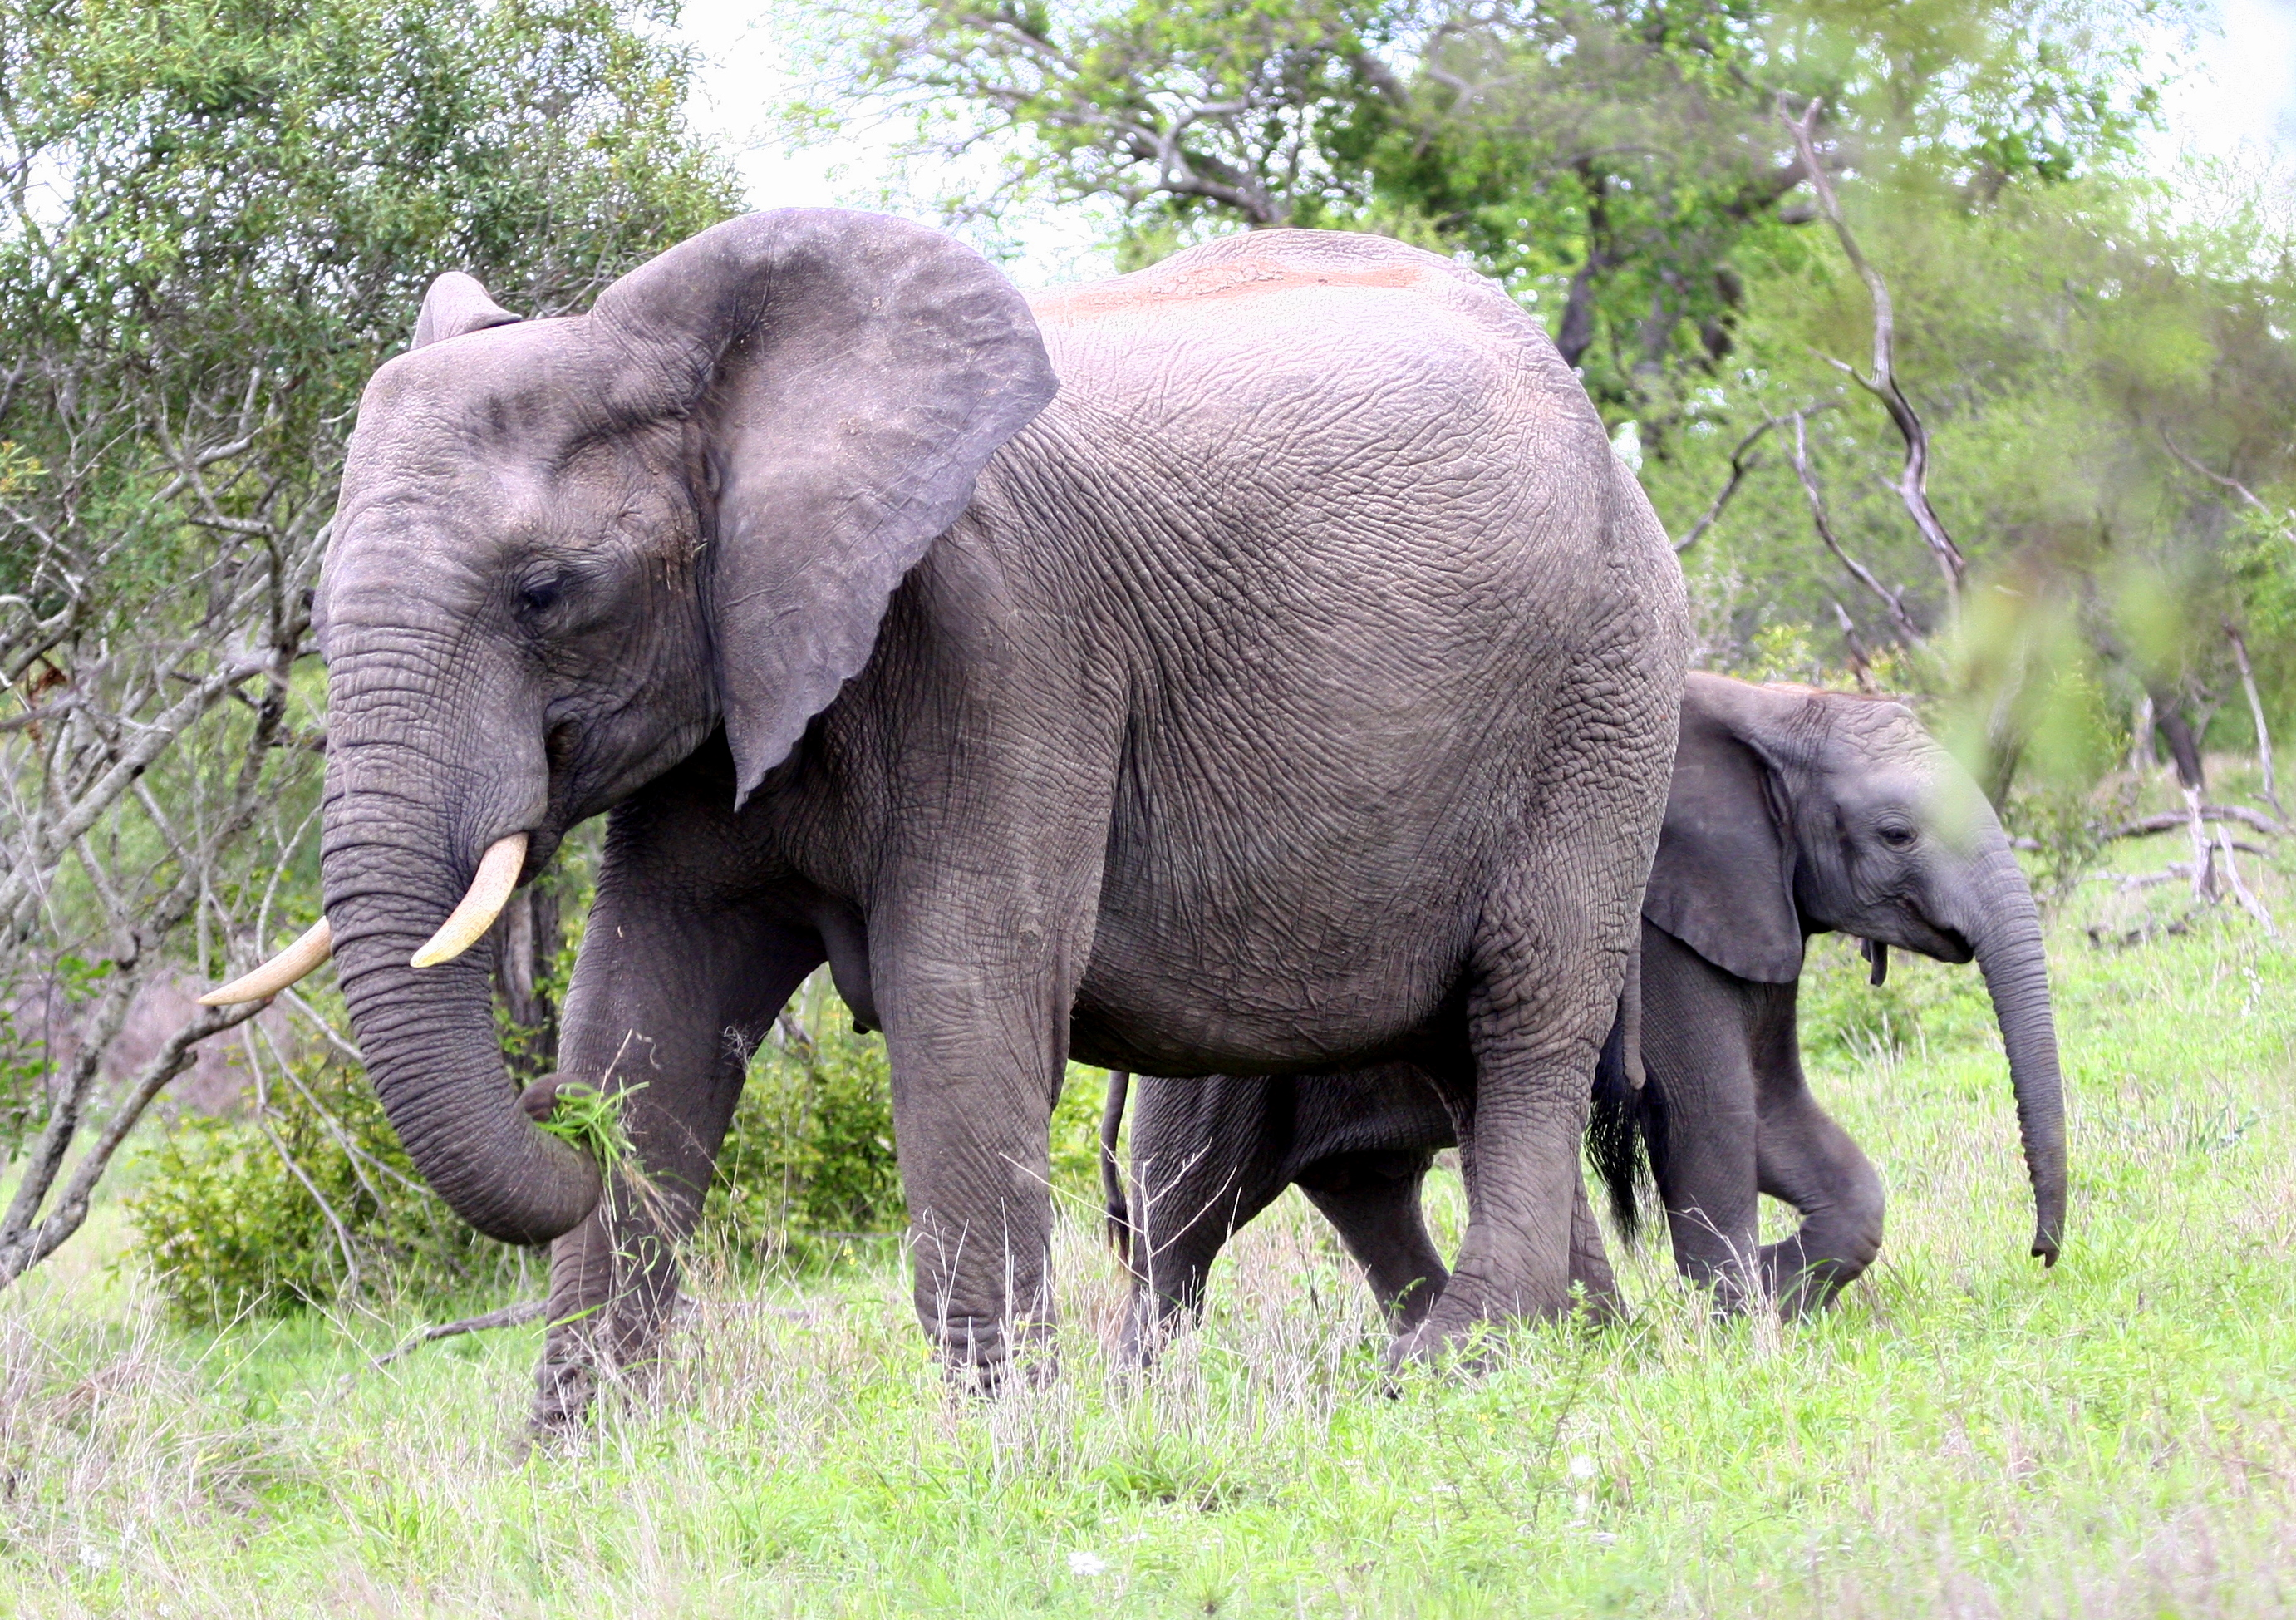 The Value of Small Wins (or, How to Eat an Elephant)